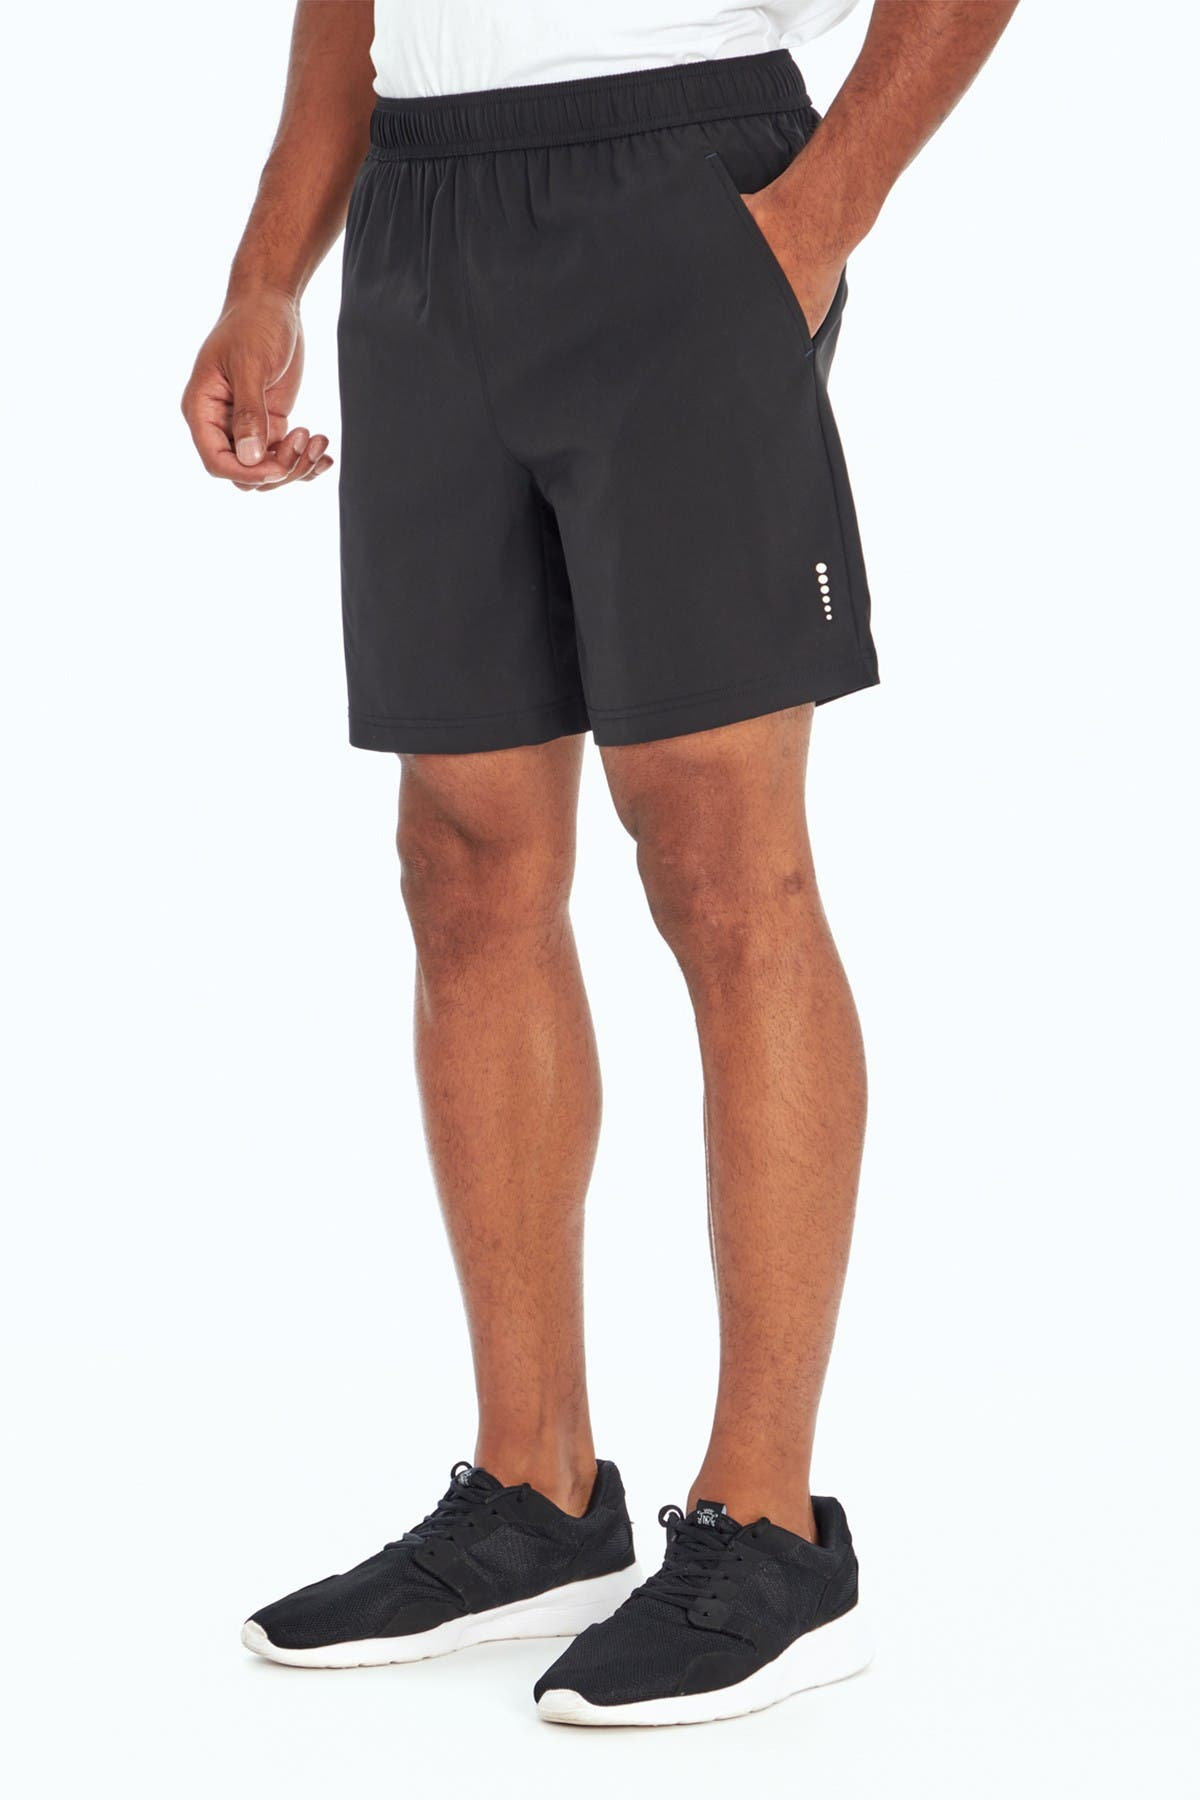 Image of The Balance Collection Deen Woven Workout Shorts